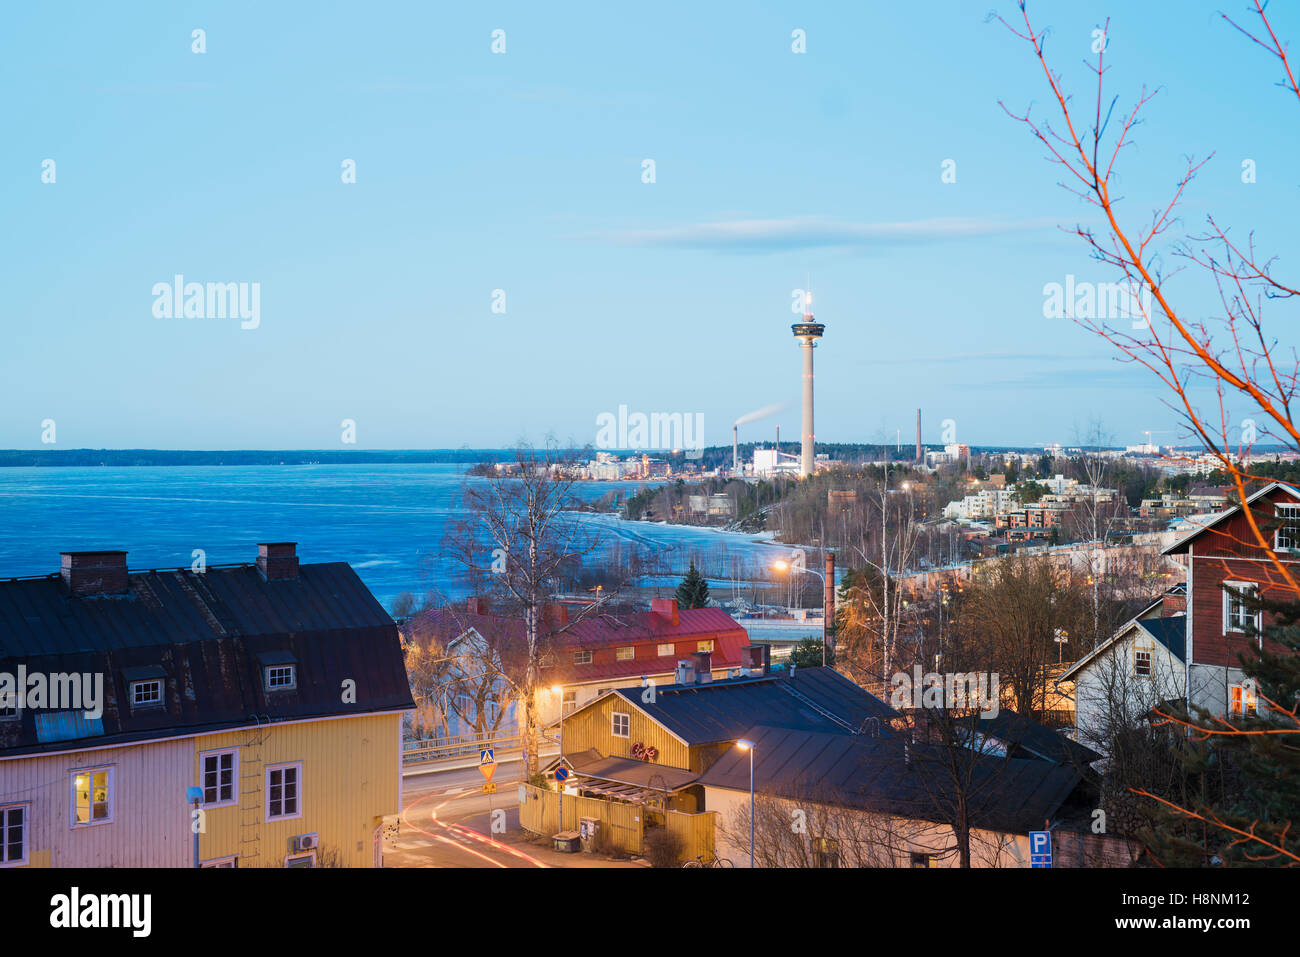 View on lake from above rooftops - Stock Image